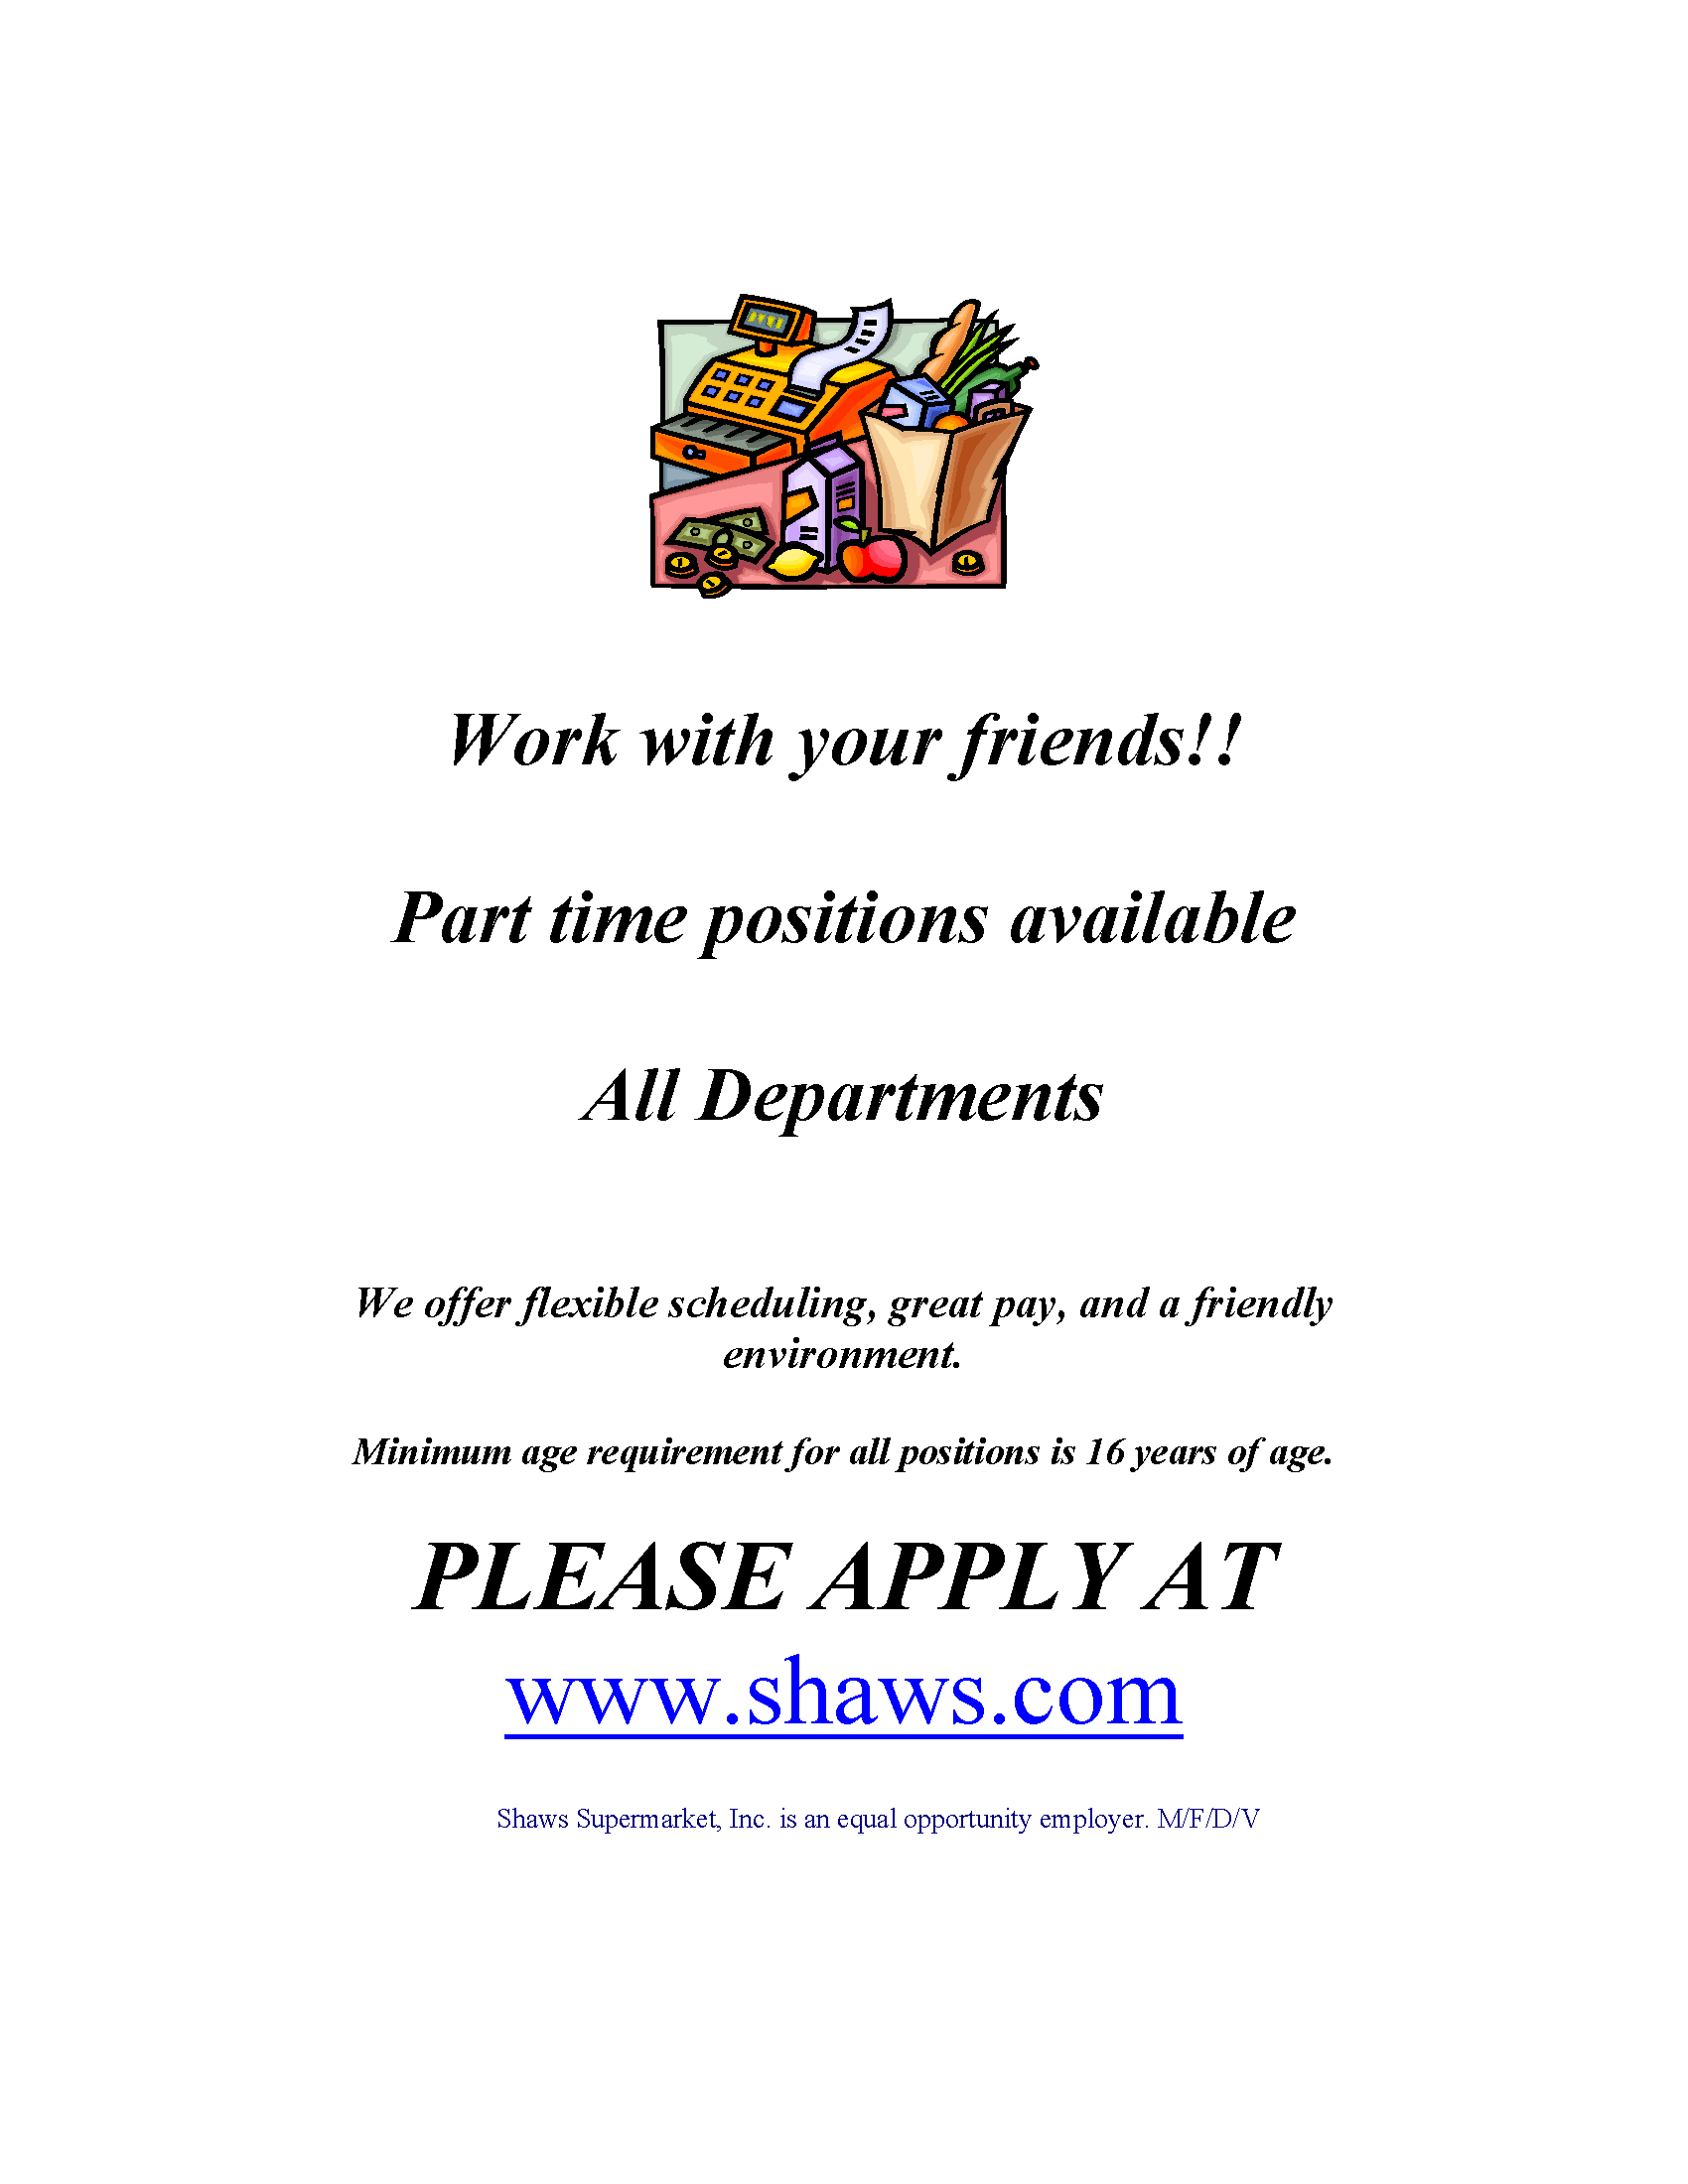 Shaw's Job Opportunity